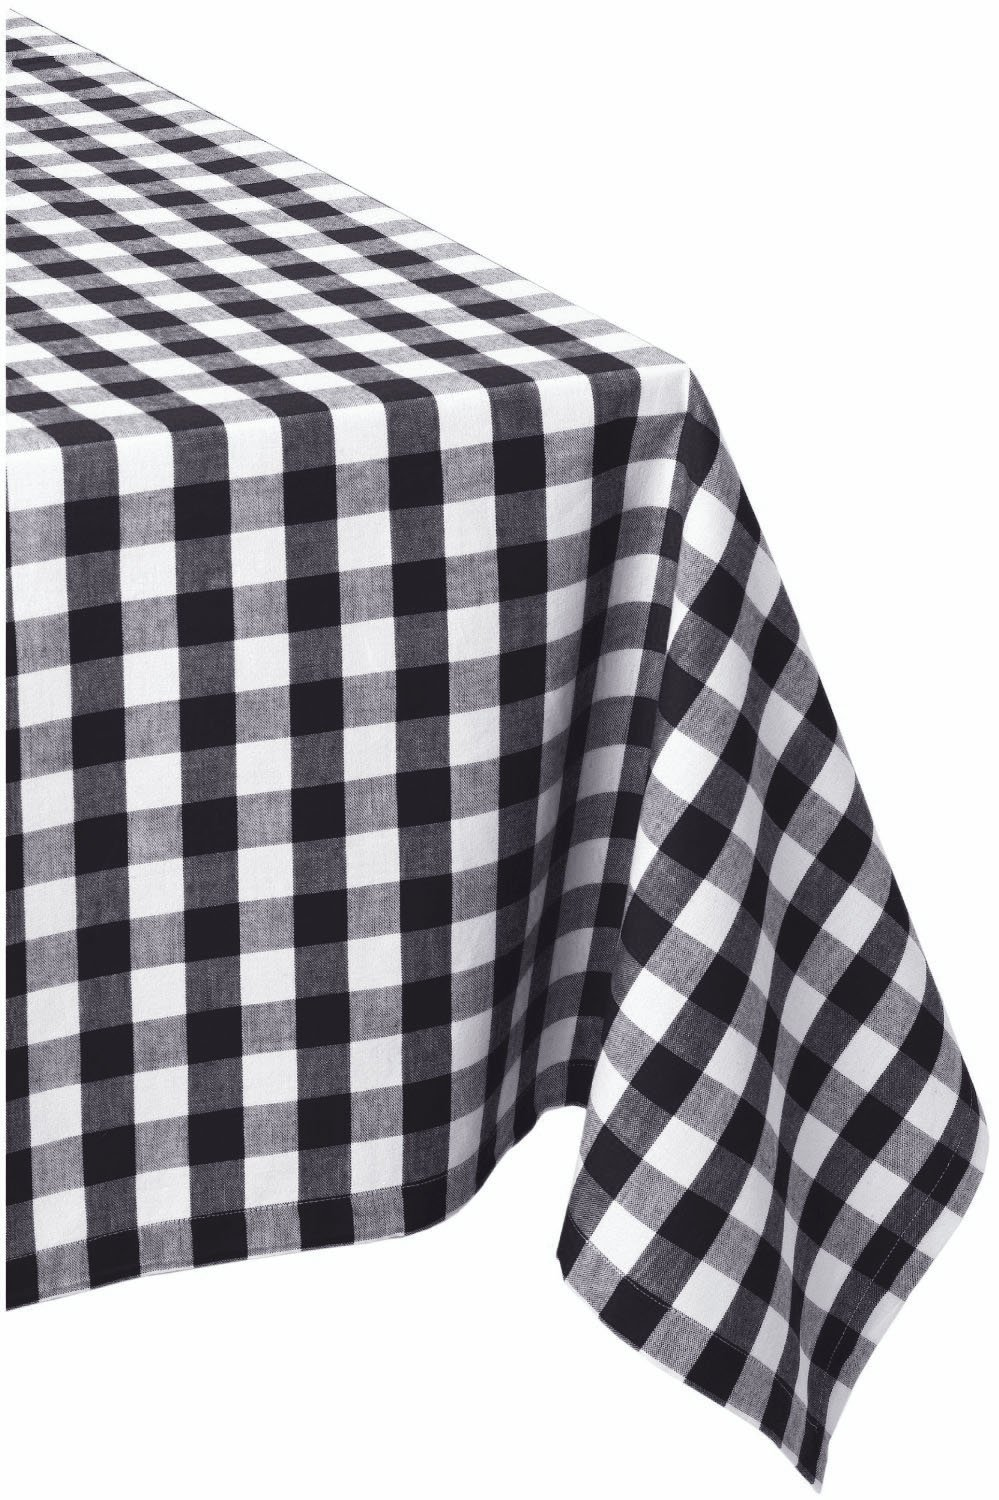 DII 60x84 Rectangular Cotton Tablecloth, Black & White Check - Perfect for Fall, Thanksgiving, Farmhouse DÃcor, Dinner Parties, Christmas, Picnics & Potlucks or Everyday Use